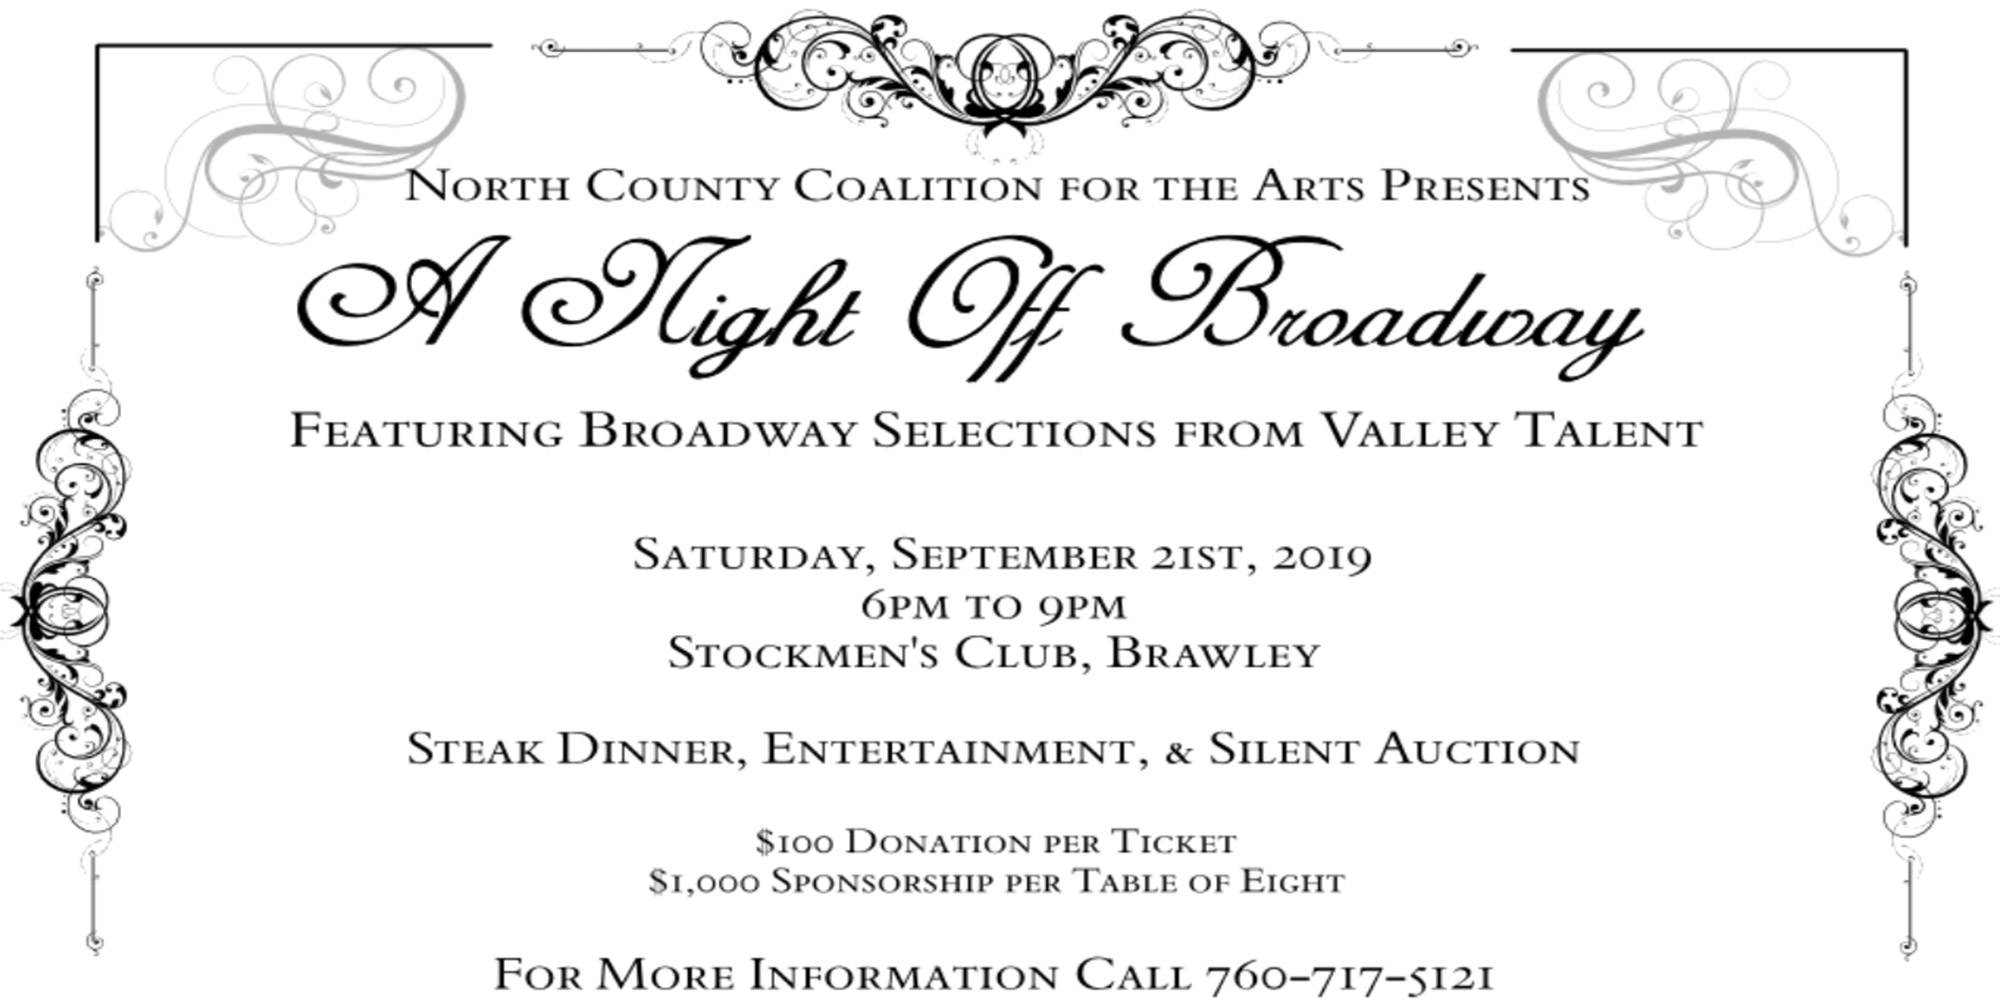 North County Coalition for the arts